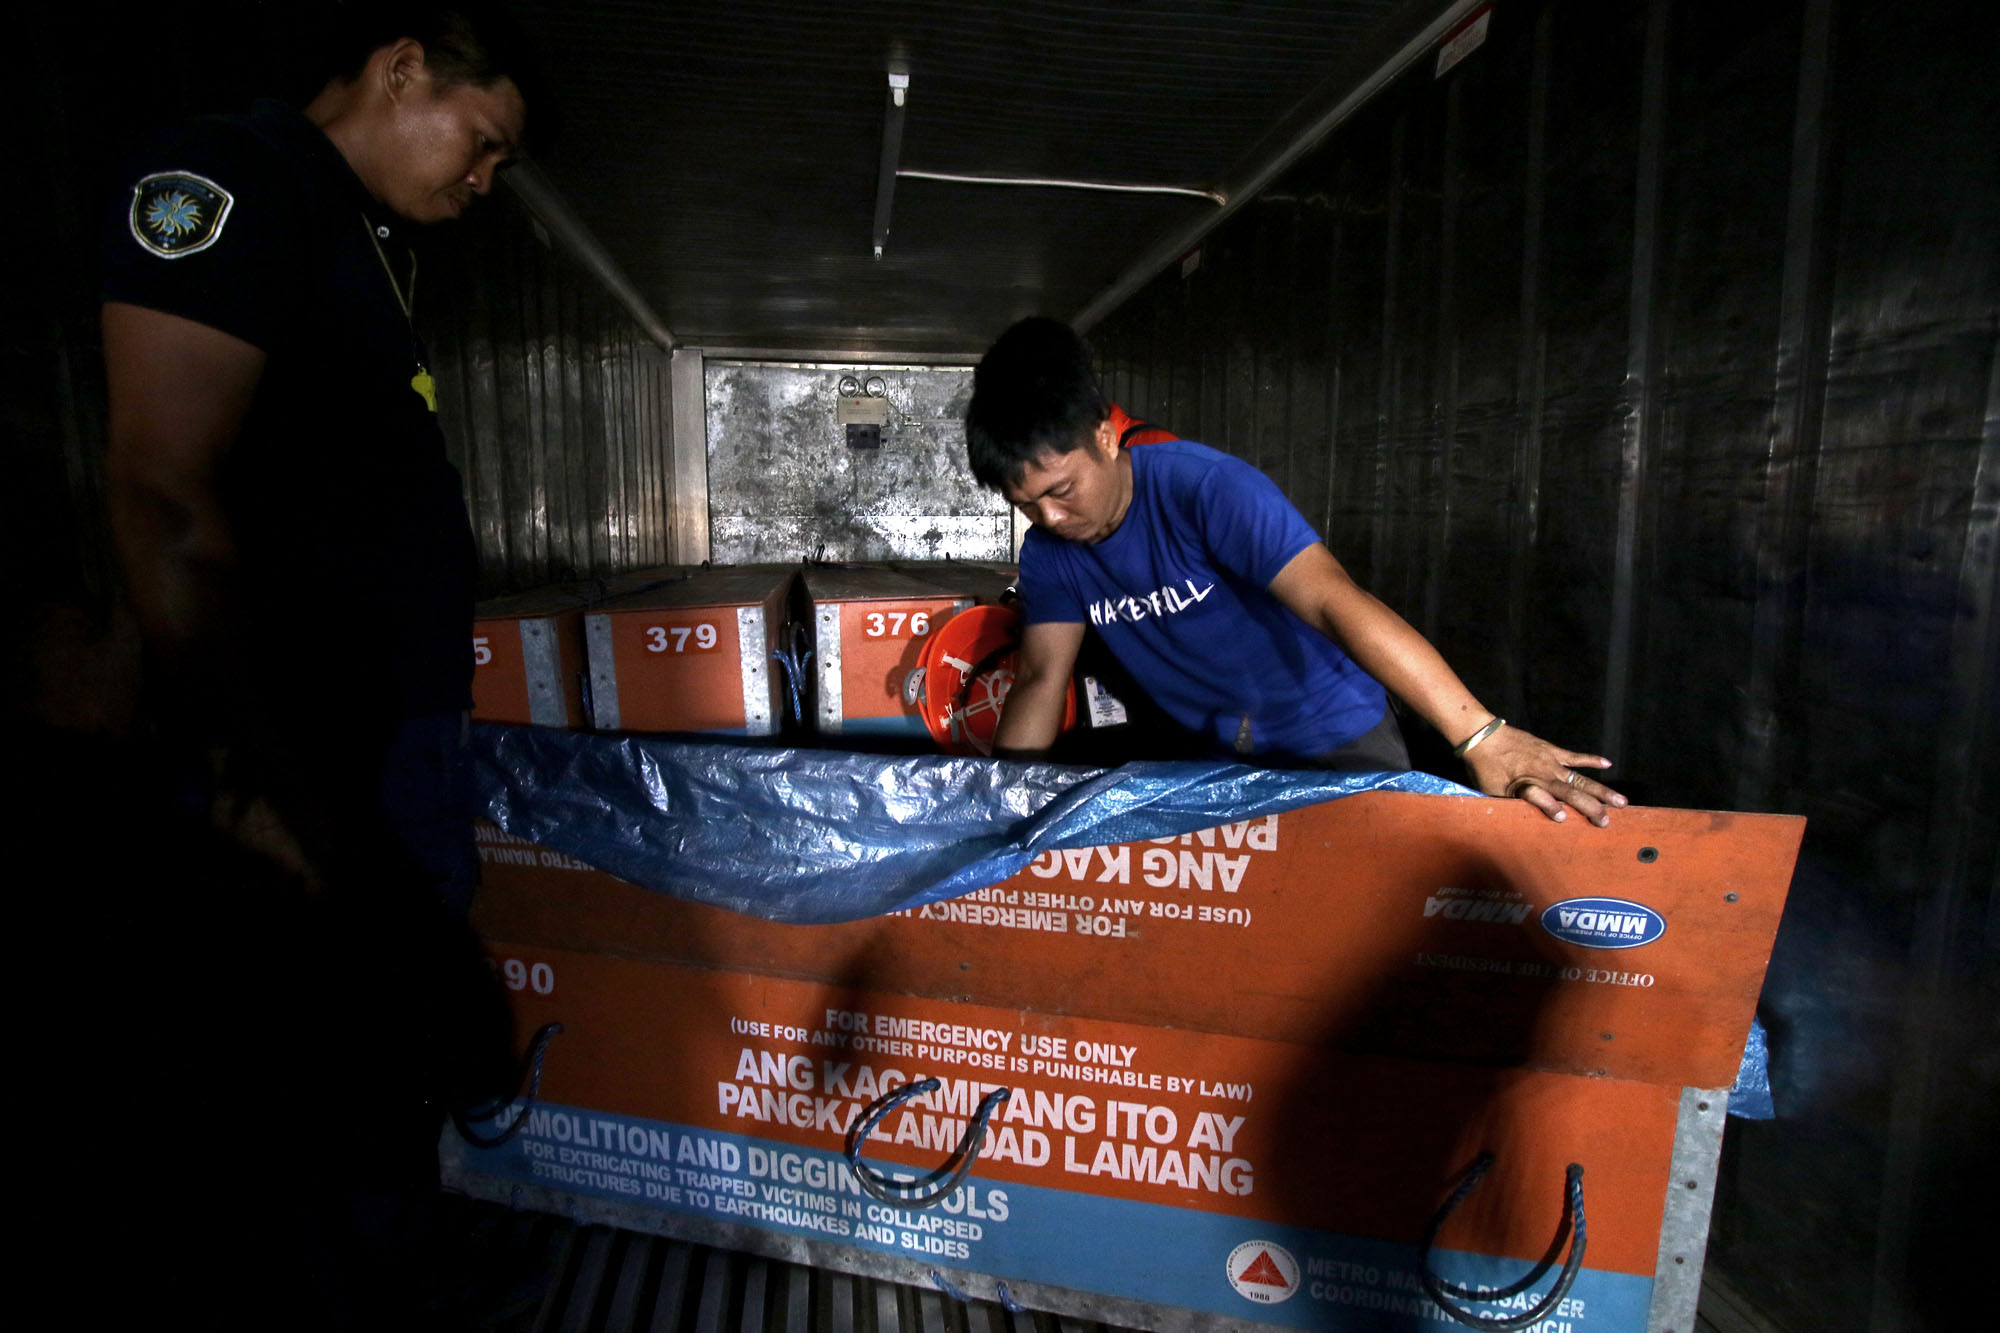 MMSHAKEDRILL. The incident command post for the third #MMShakeDrill is located at the South Quadrant. Photo by Inoue Jaena/Rappler